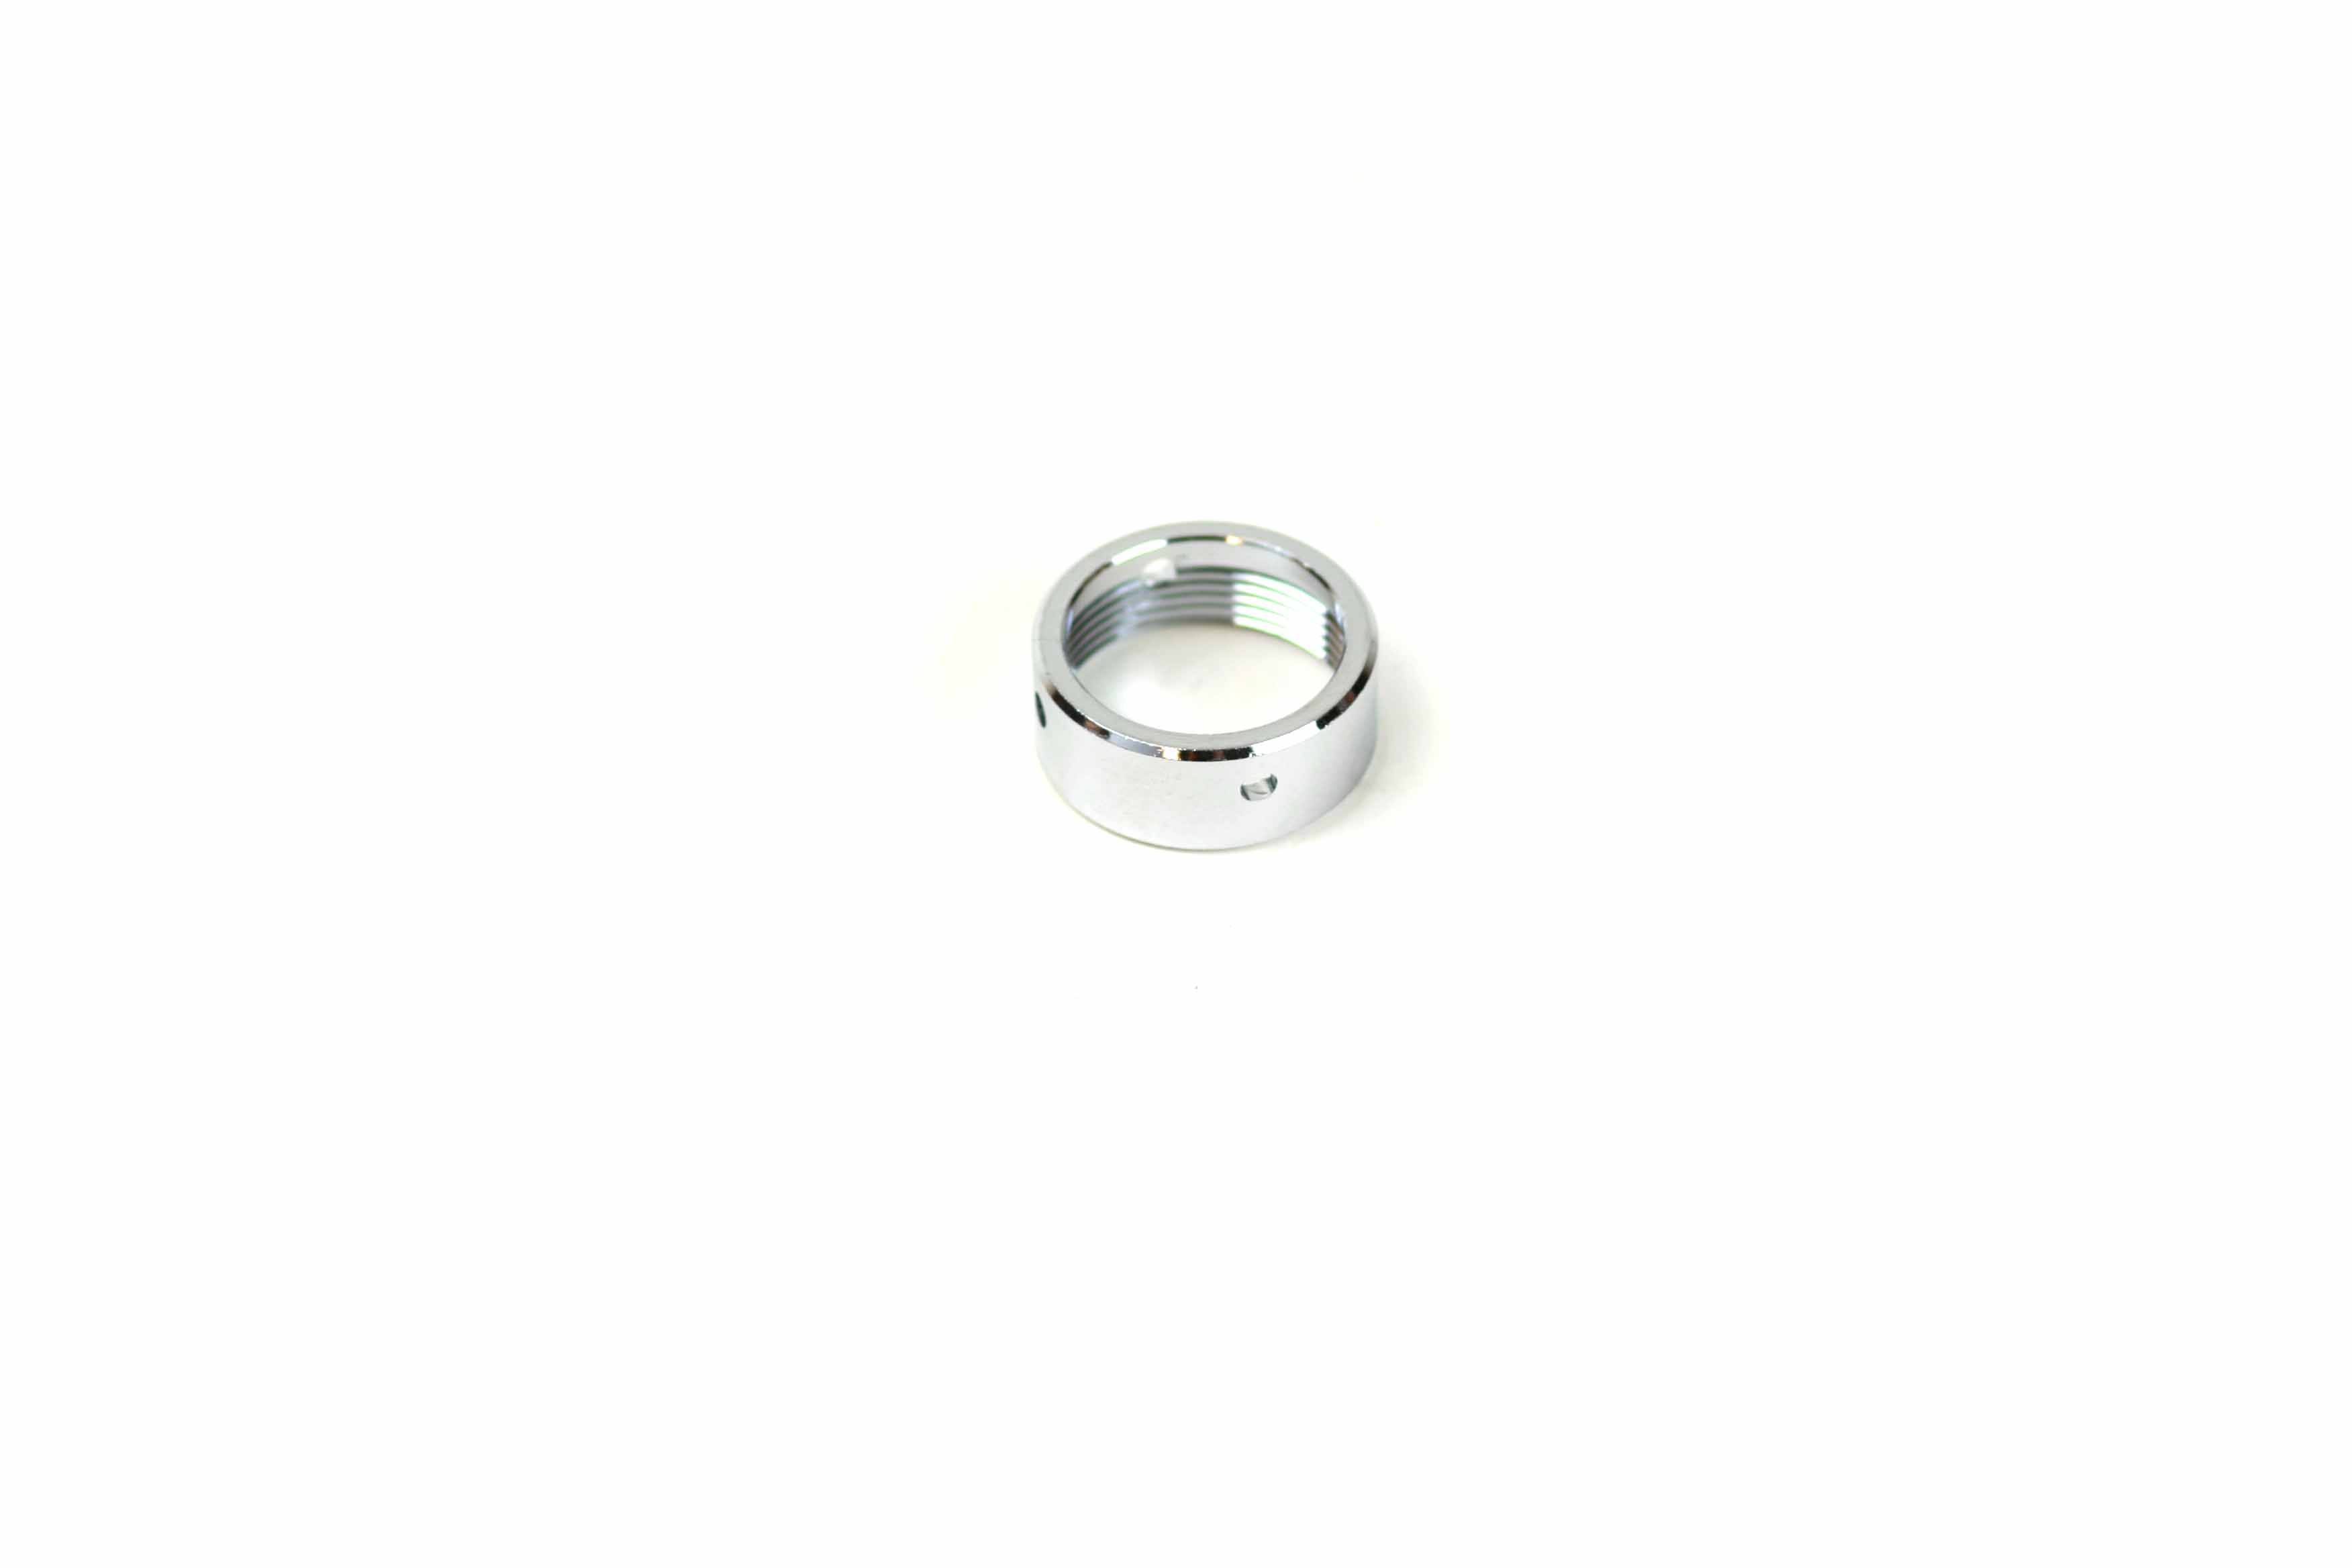 Coupling Nuts: Chrome (1)